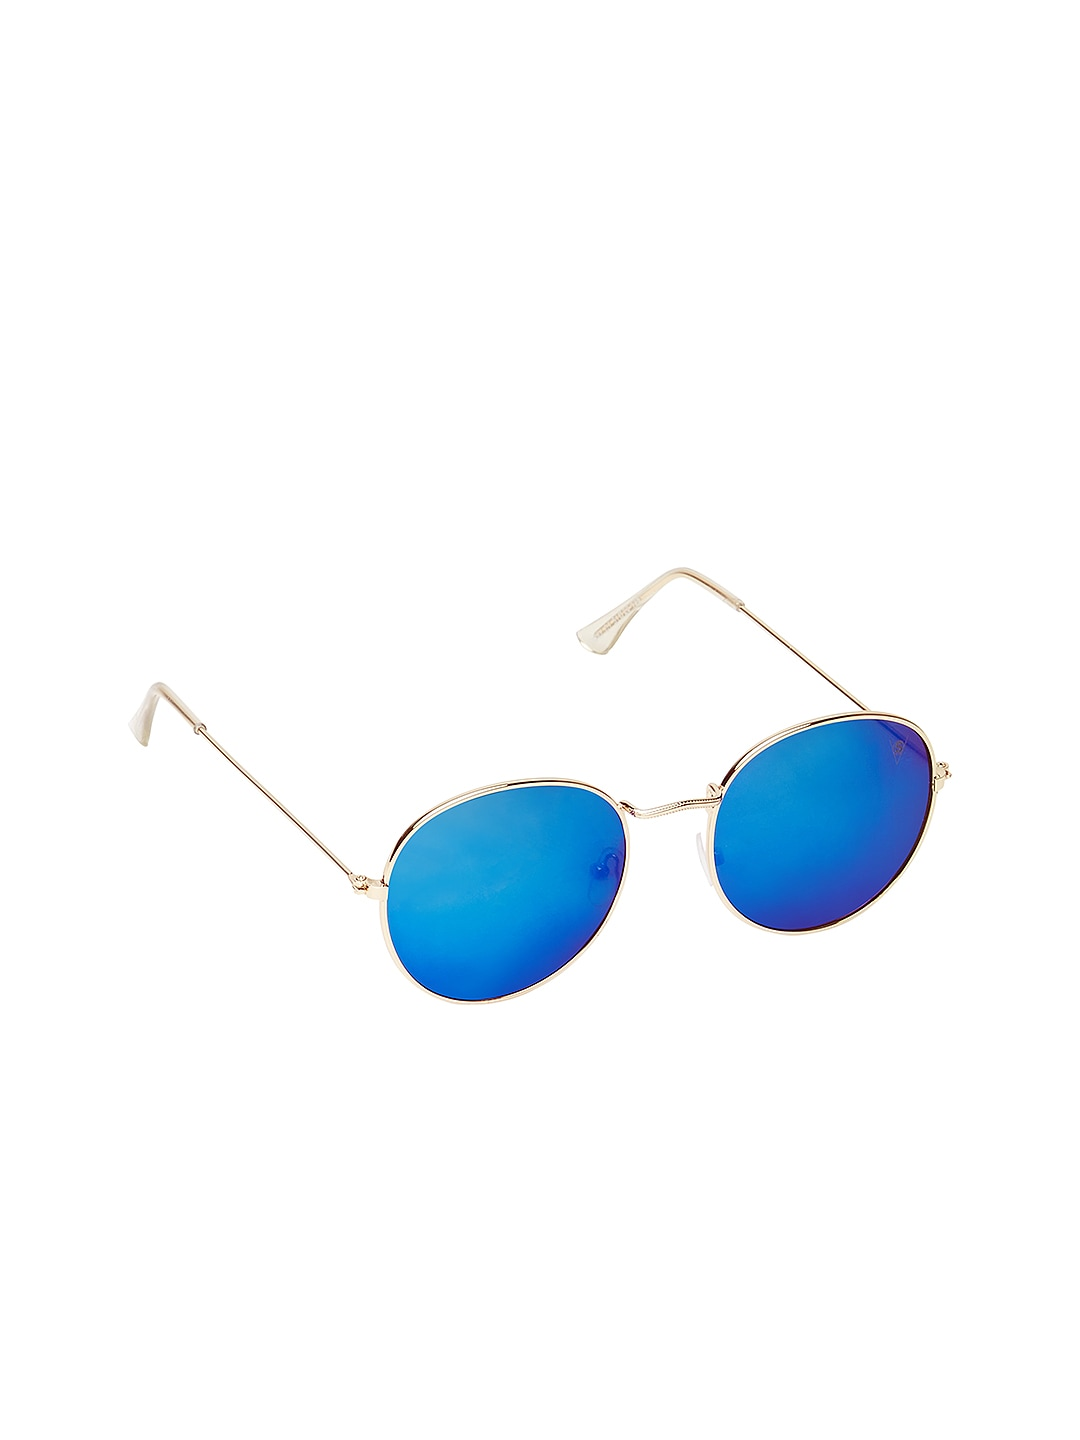 b8ed9dbd49f Round Sunglasses - Buy Round Sunglasses online in India